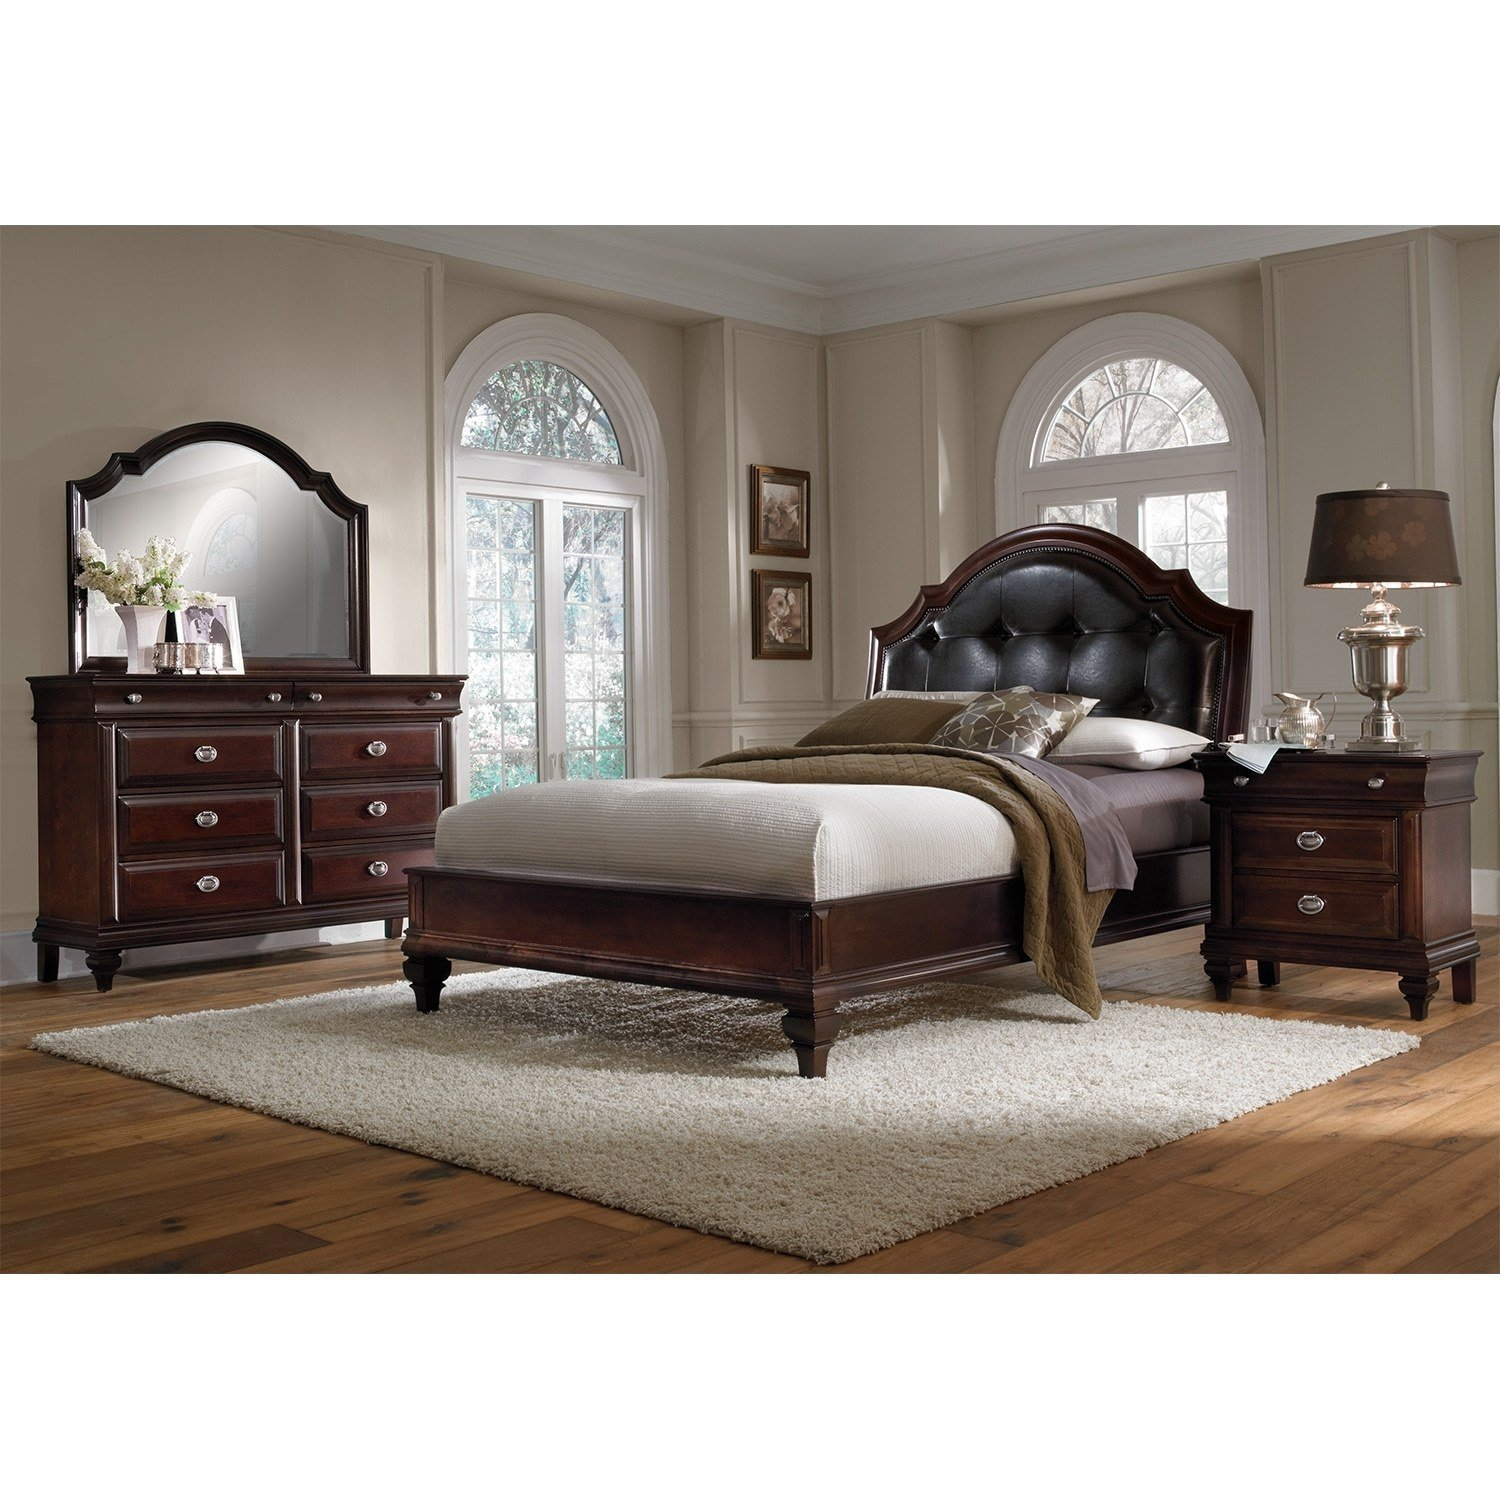 Best Manhattan 6 Piece Queen Bedroom Set Cherry Value City Furniture With Pictures